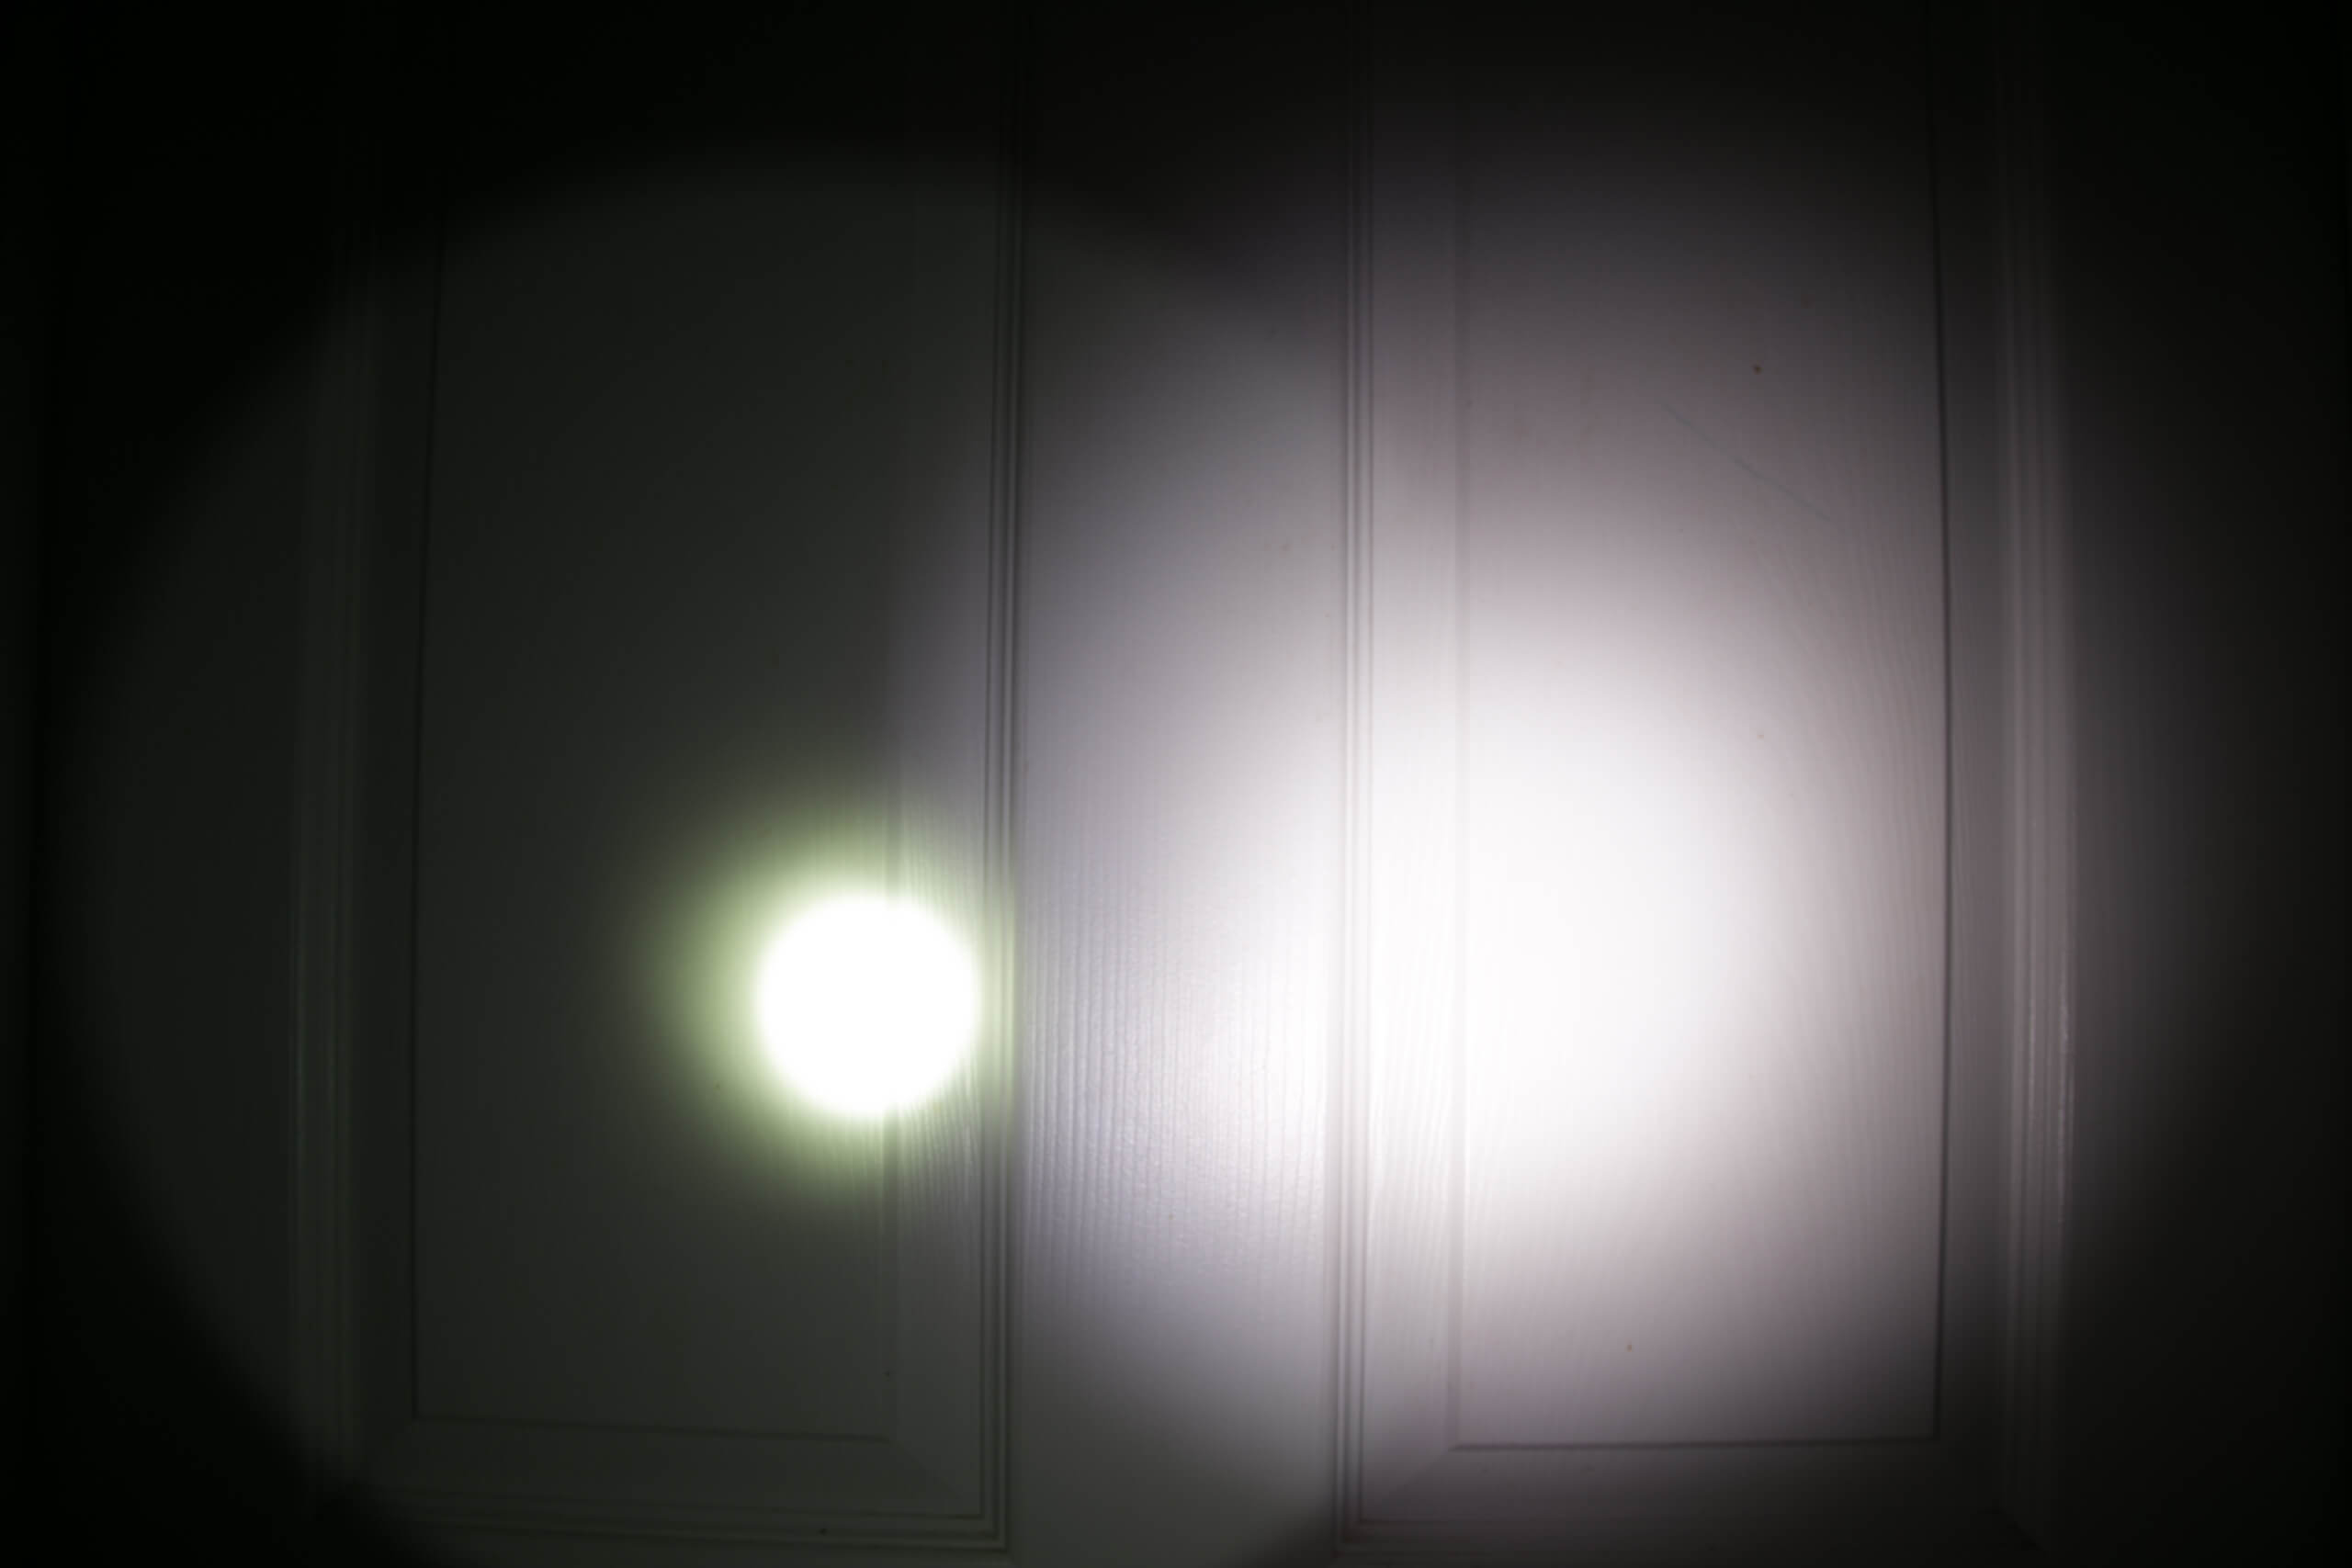 Imalent RT90 Luminus SBT-90.2 Flashlight beamshot door 1